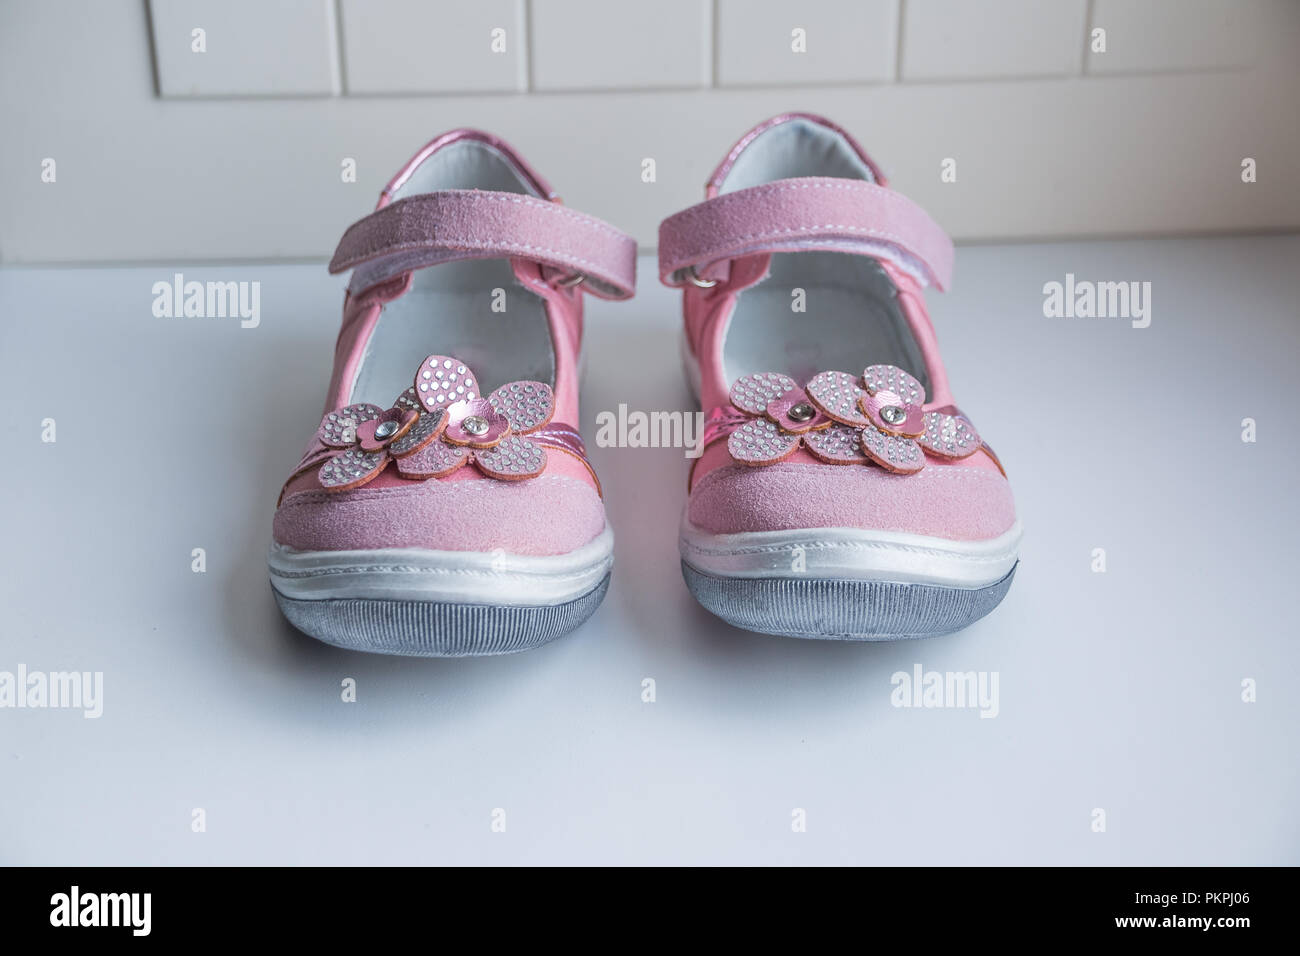 e2b14da68bbf10 Pair of cute baby sandals decorated with flowers on white background ...